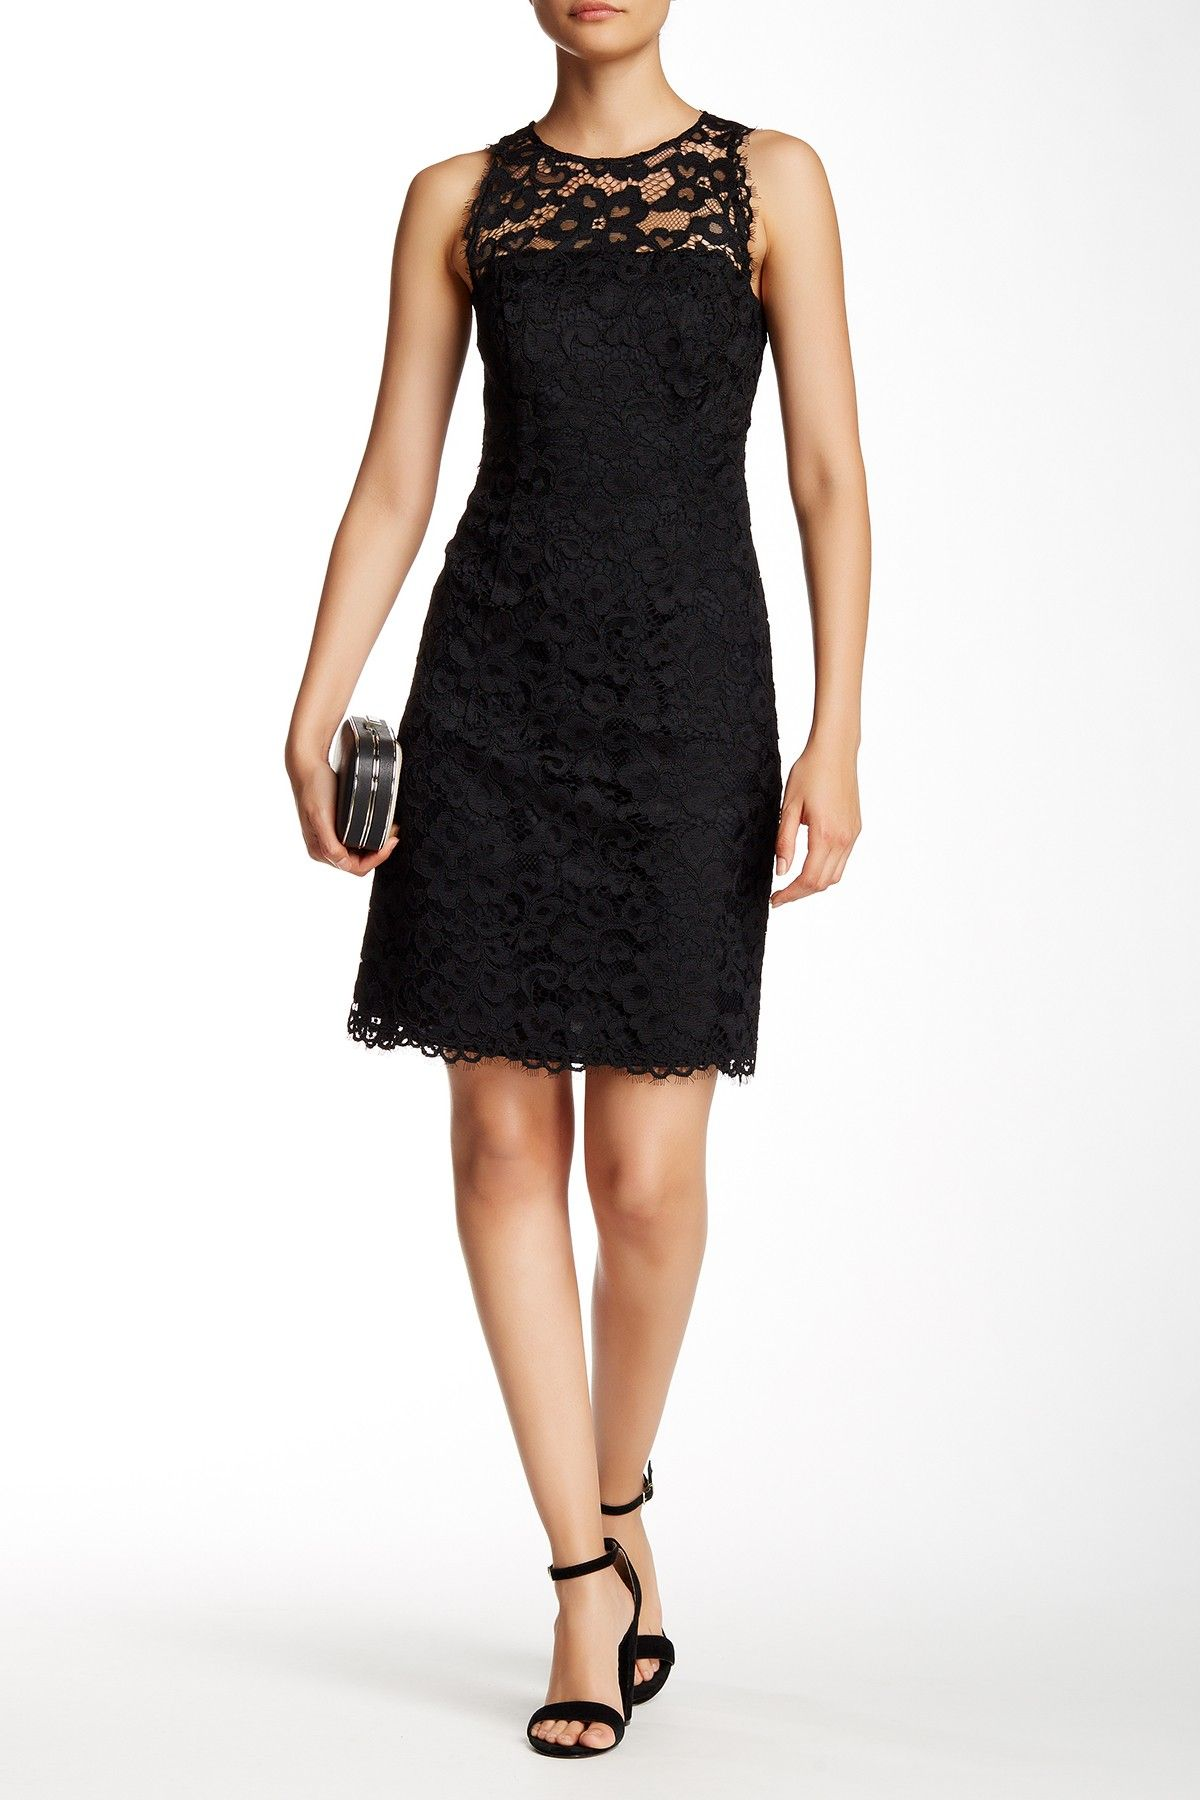 Lace dress products pinterest lace dress red shoes and black